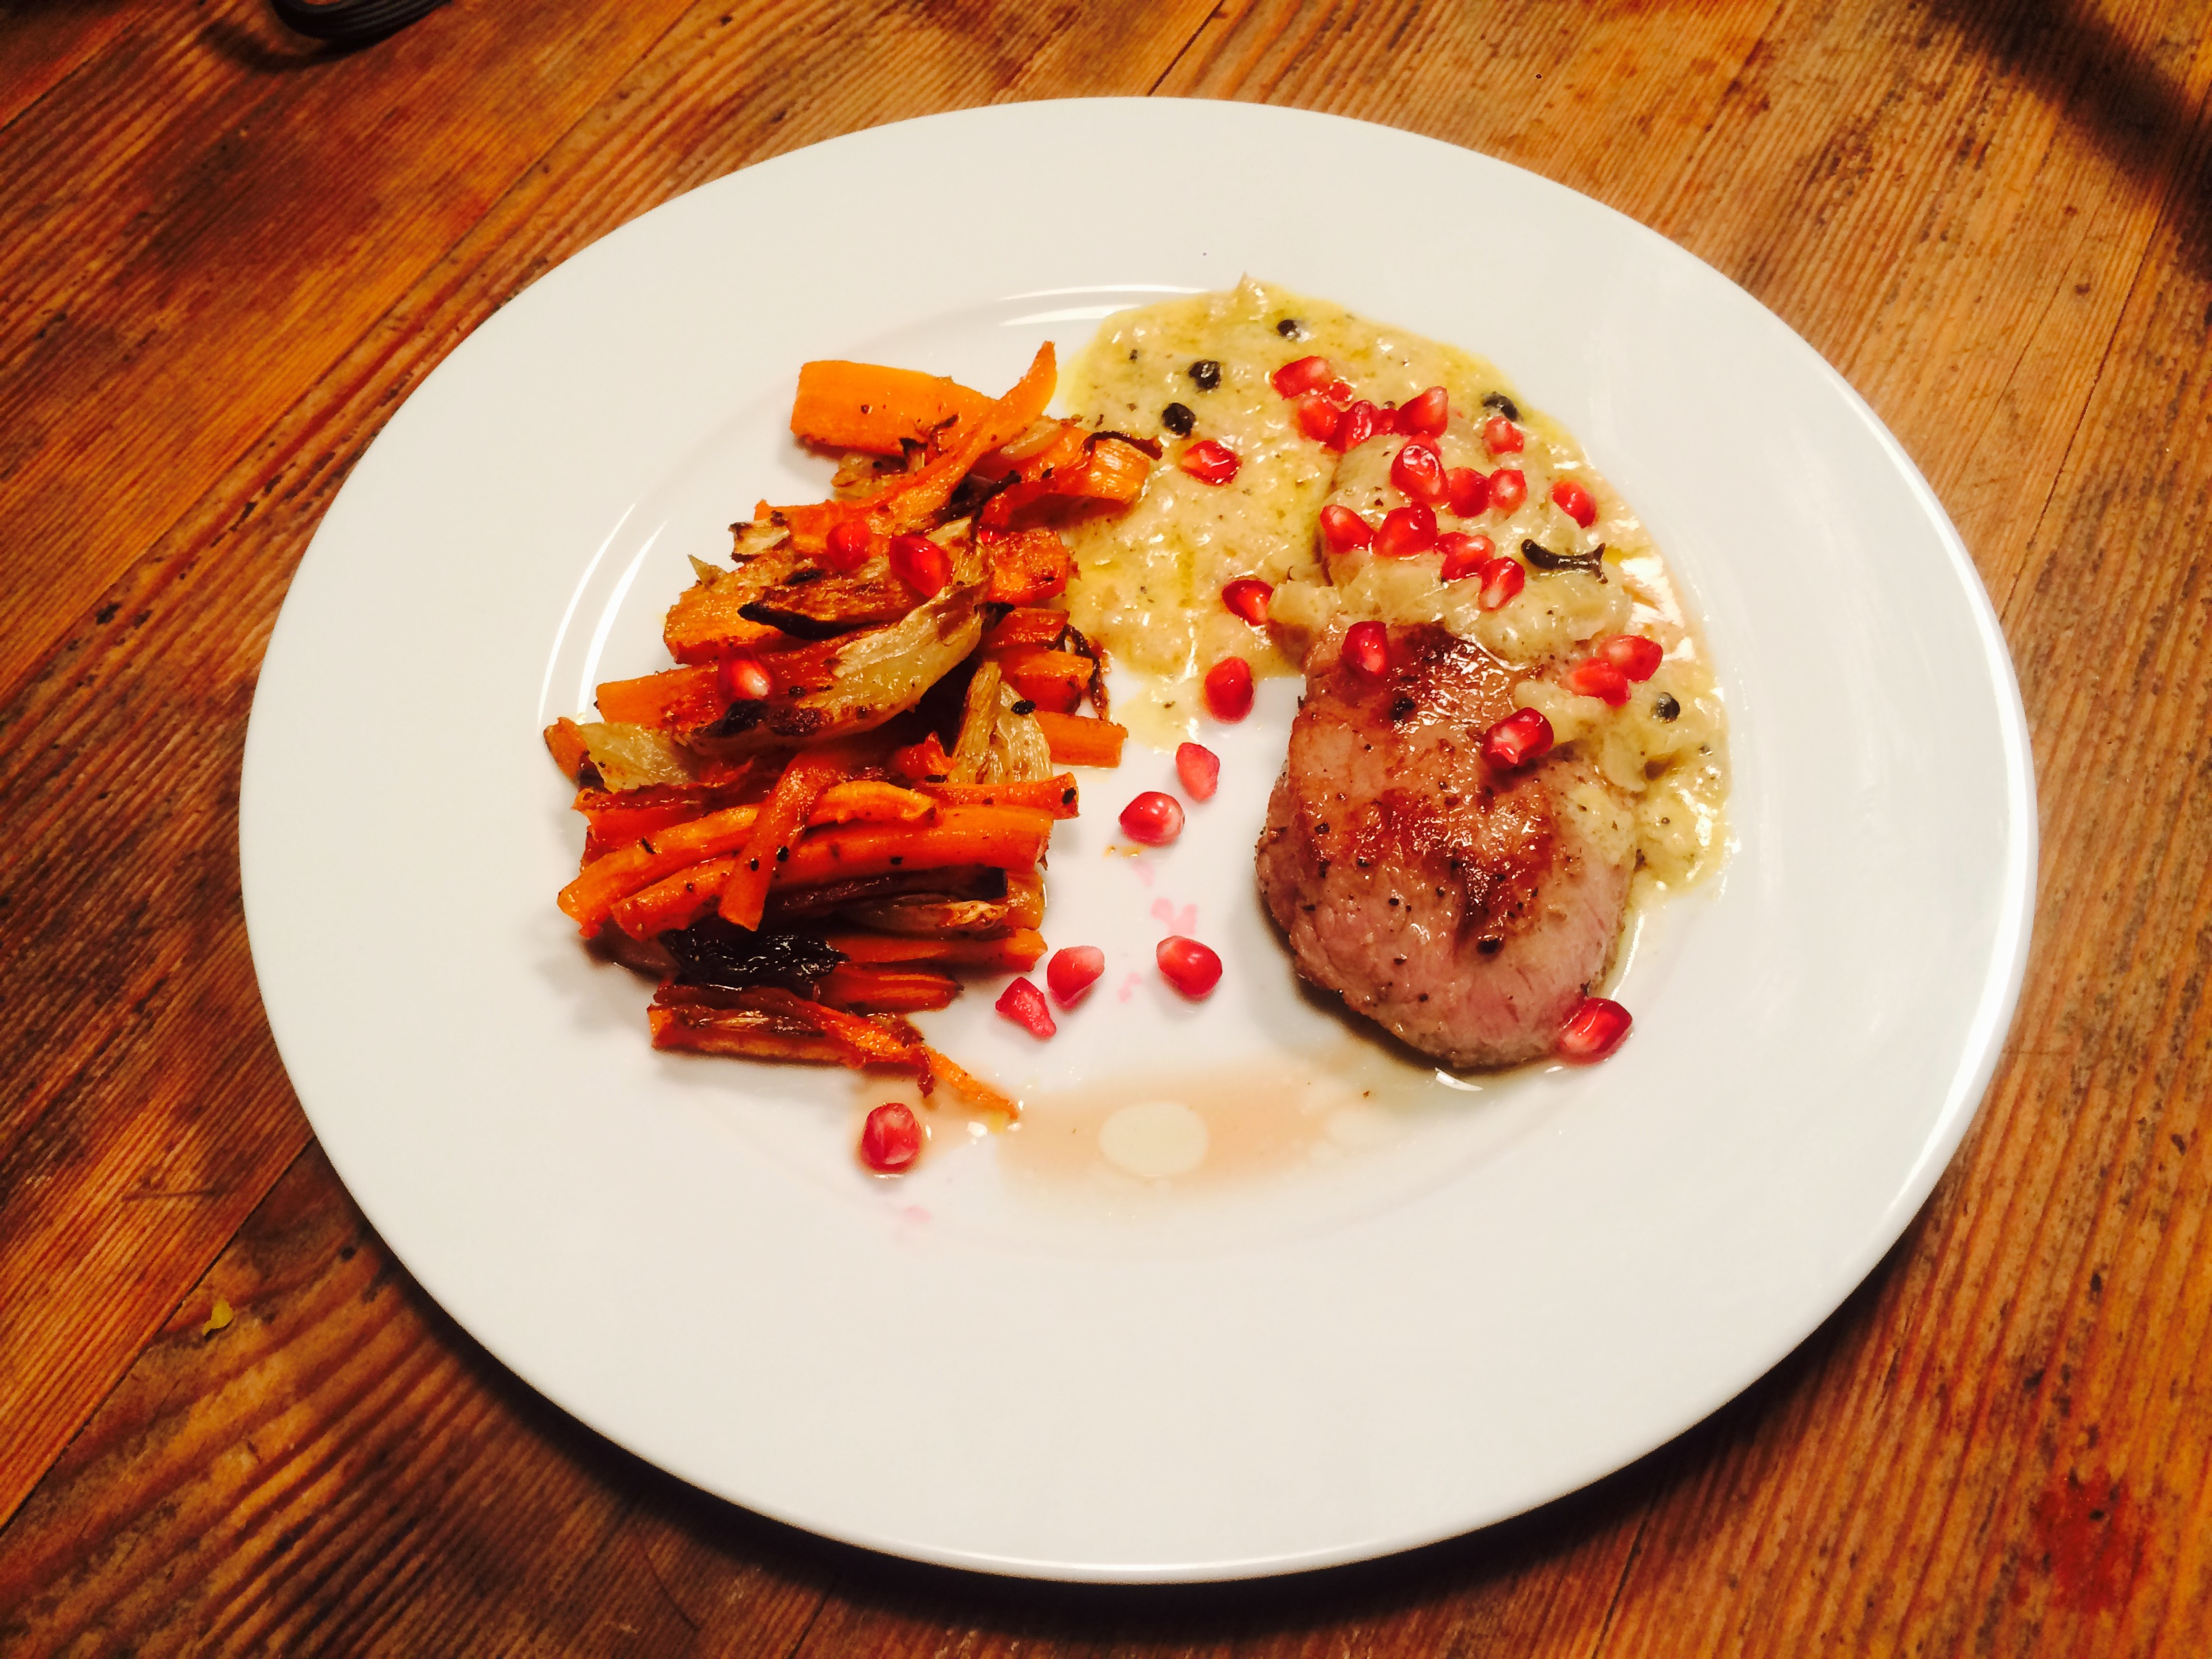 Veal Cutlet with Gin-Juniper Berry Sauce, Fennel and Carrots